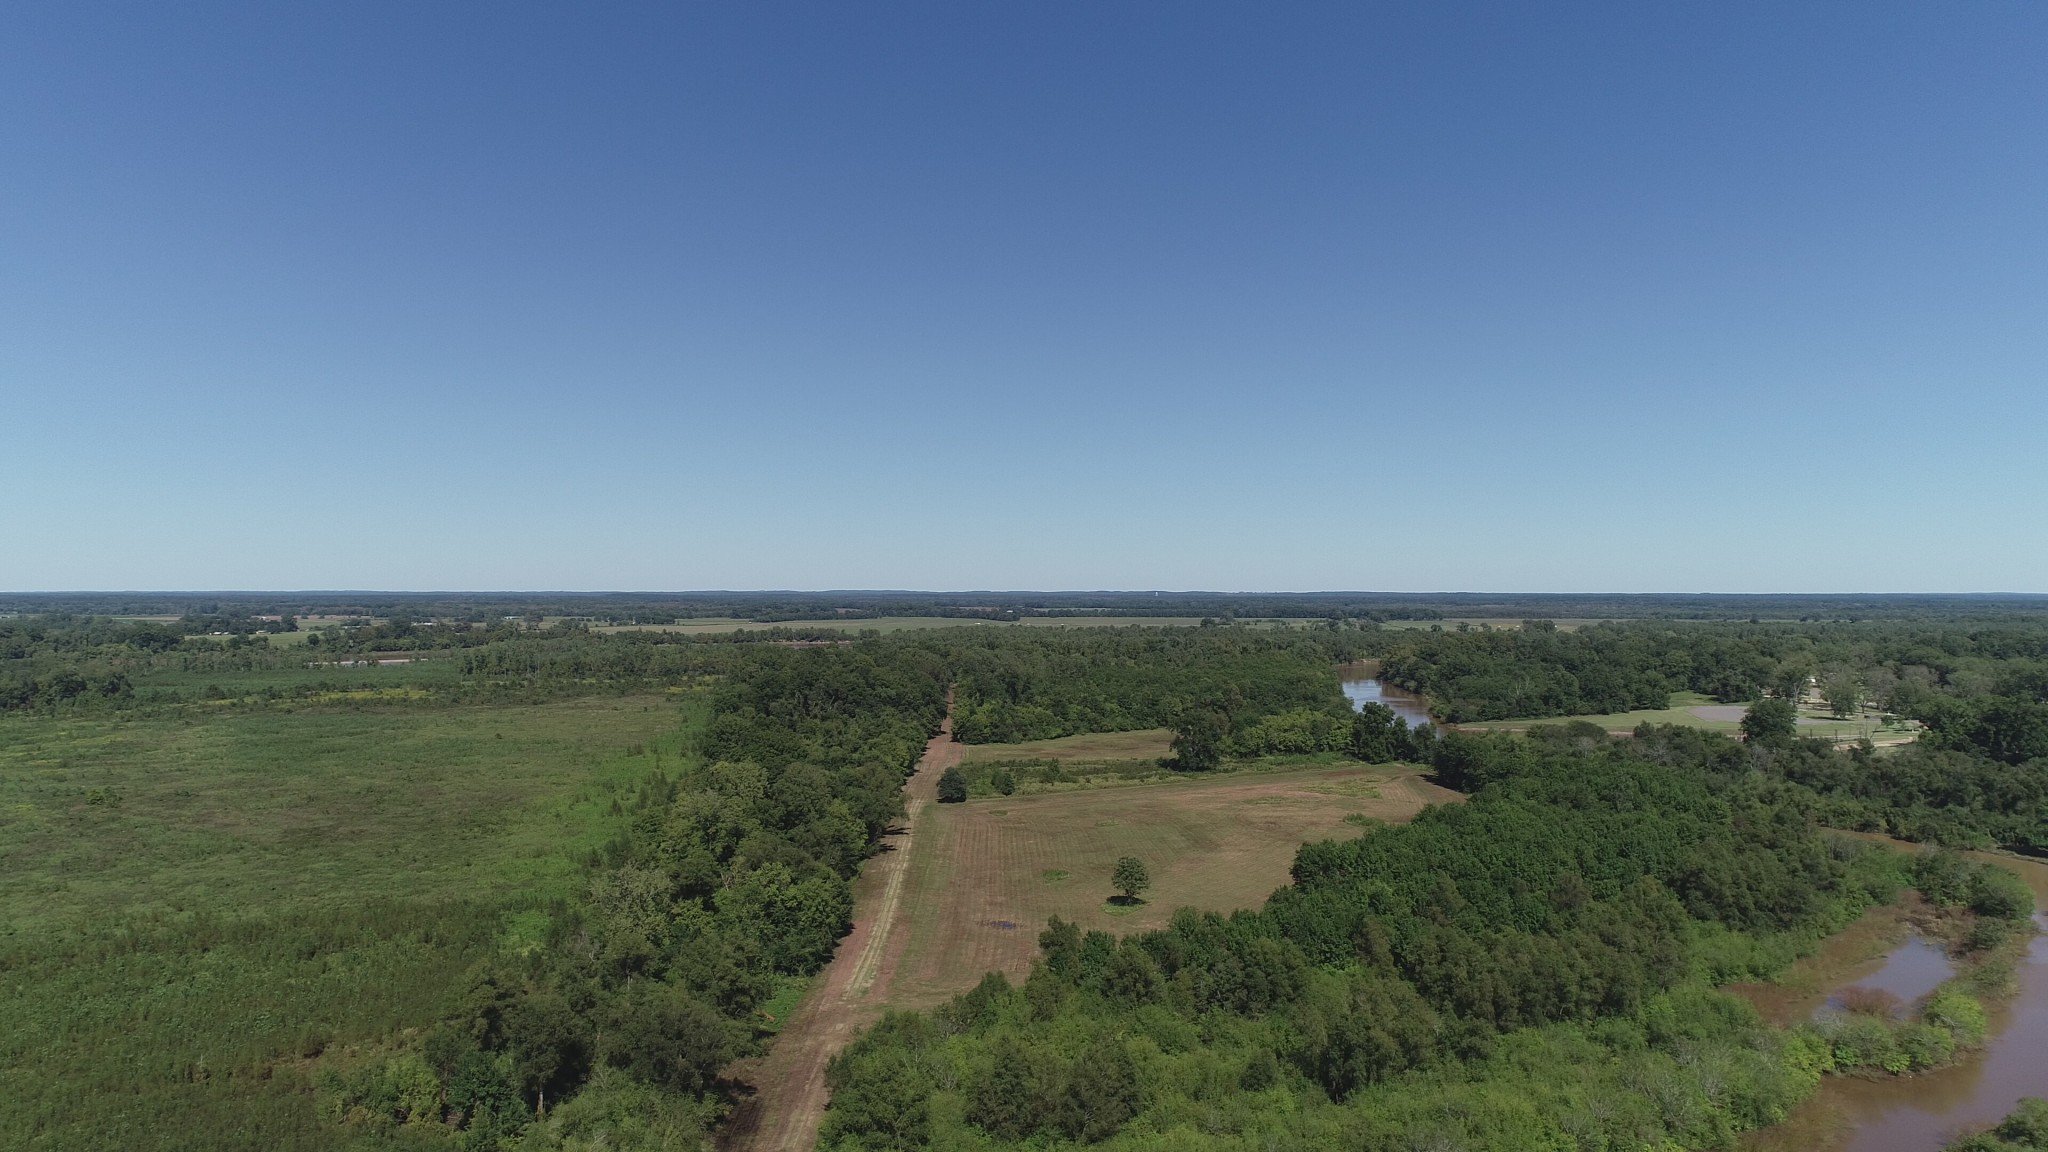 Bayou Pierre Tract, Natchitoches Parish, 287 Acres +/-